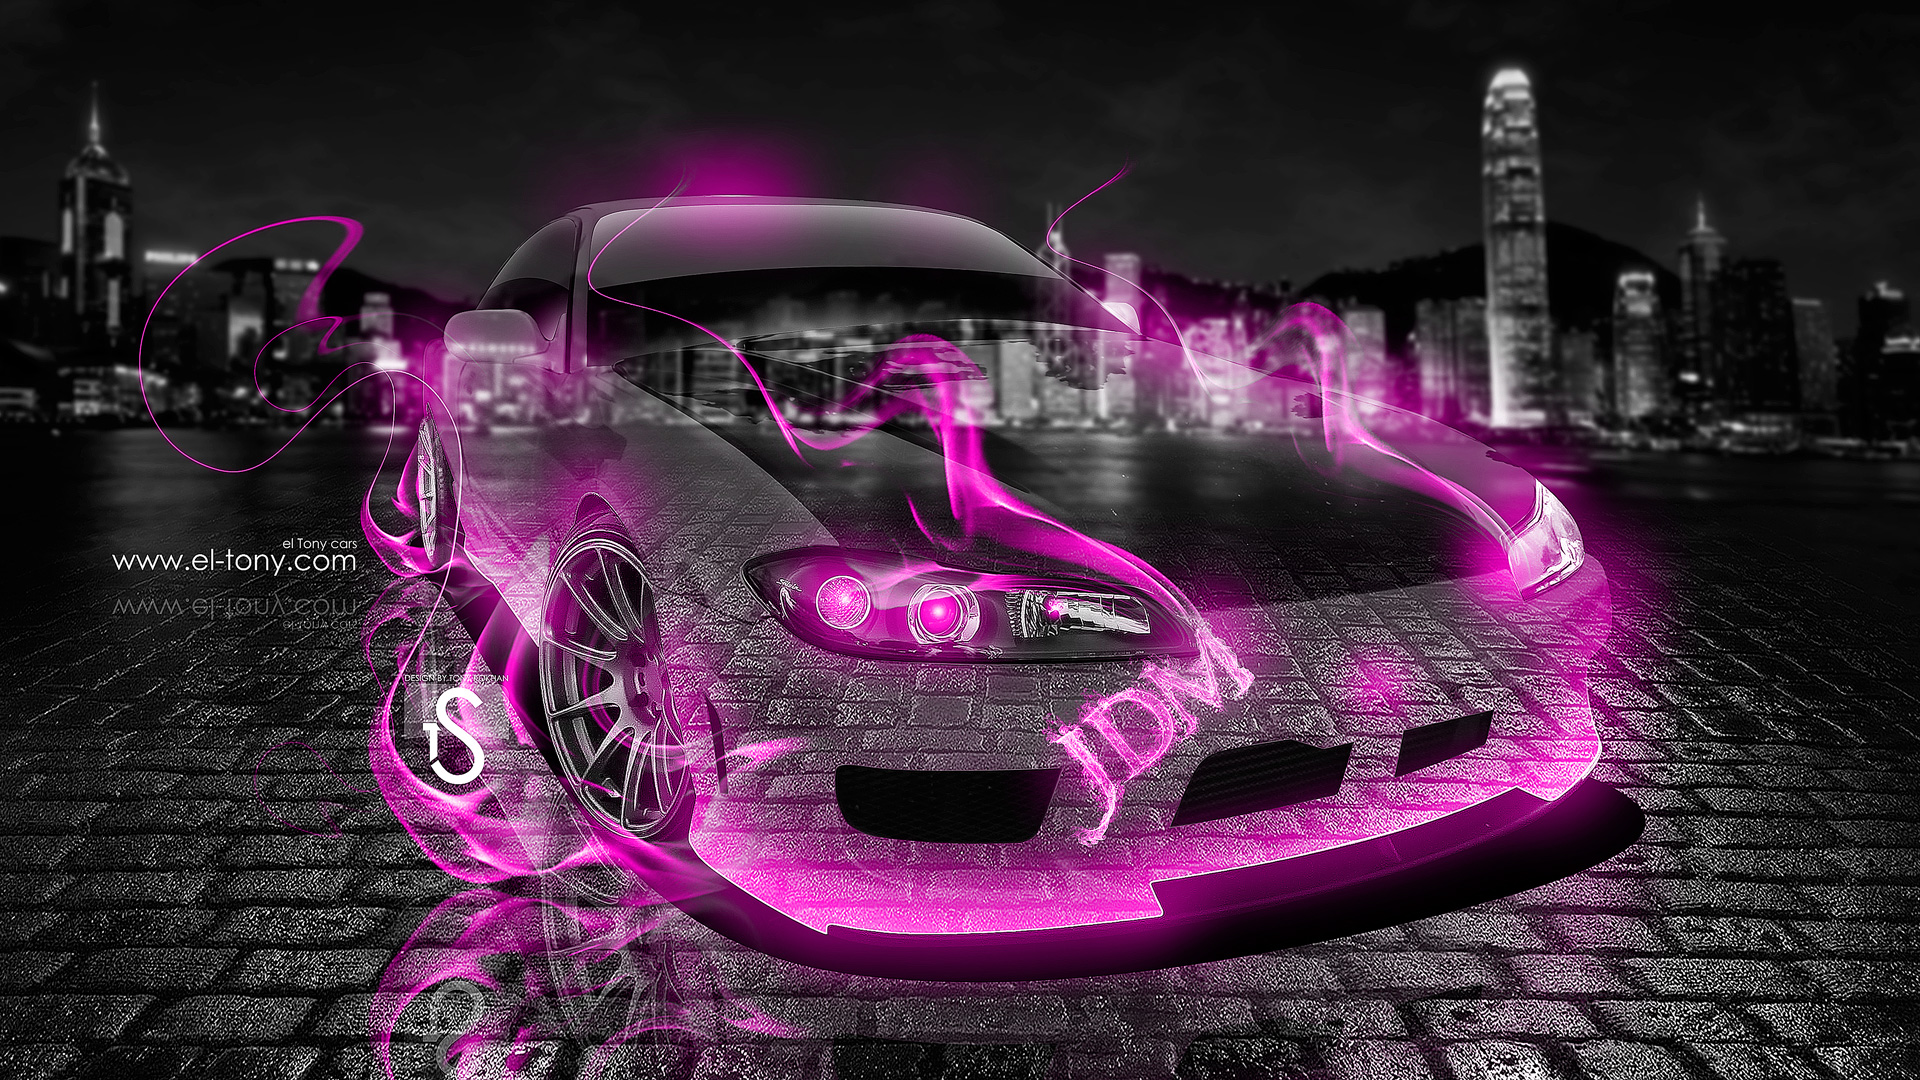 Lovely Nissan Silvia S15 JDM Pink Fire Crystal Car